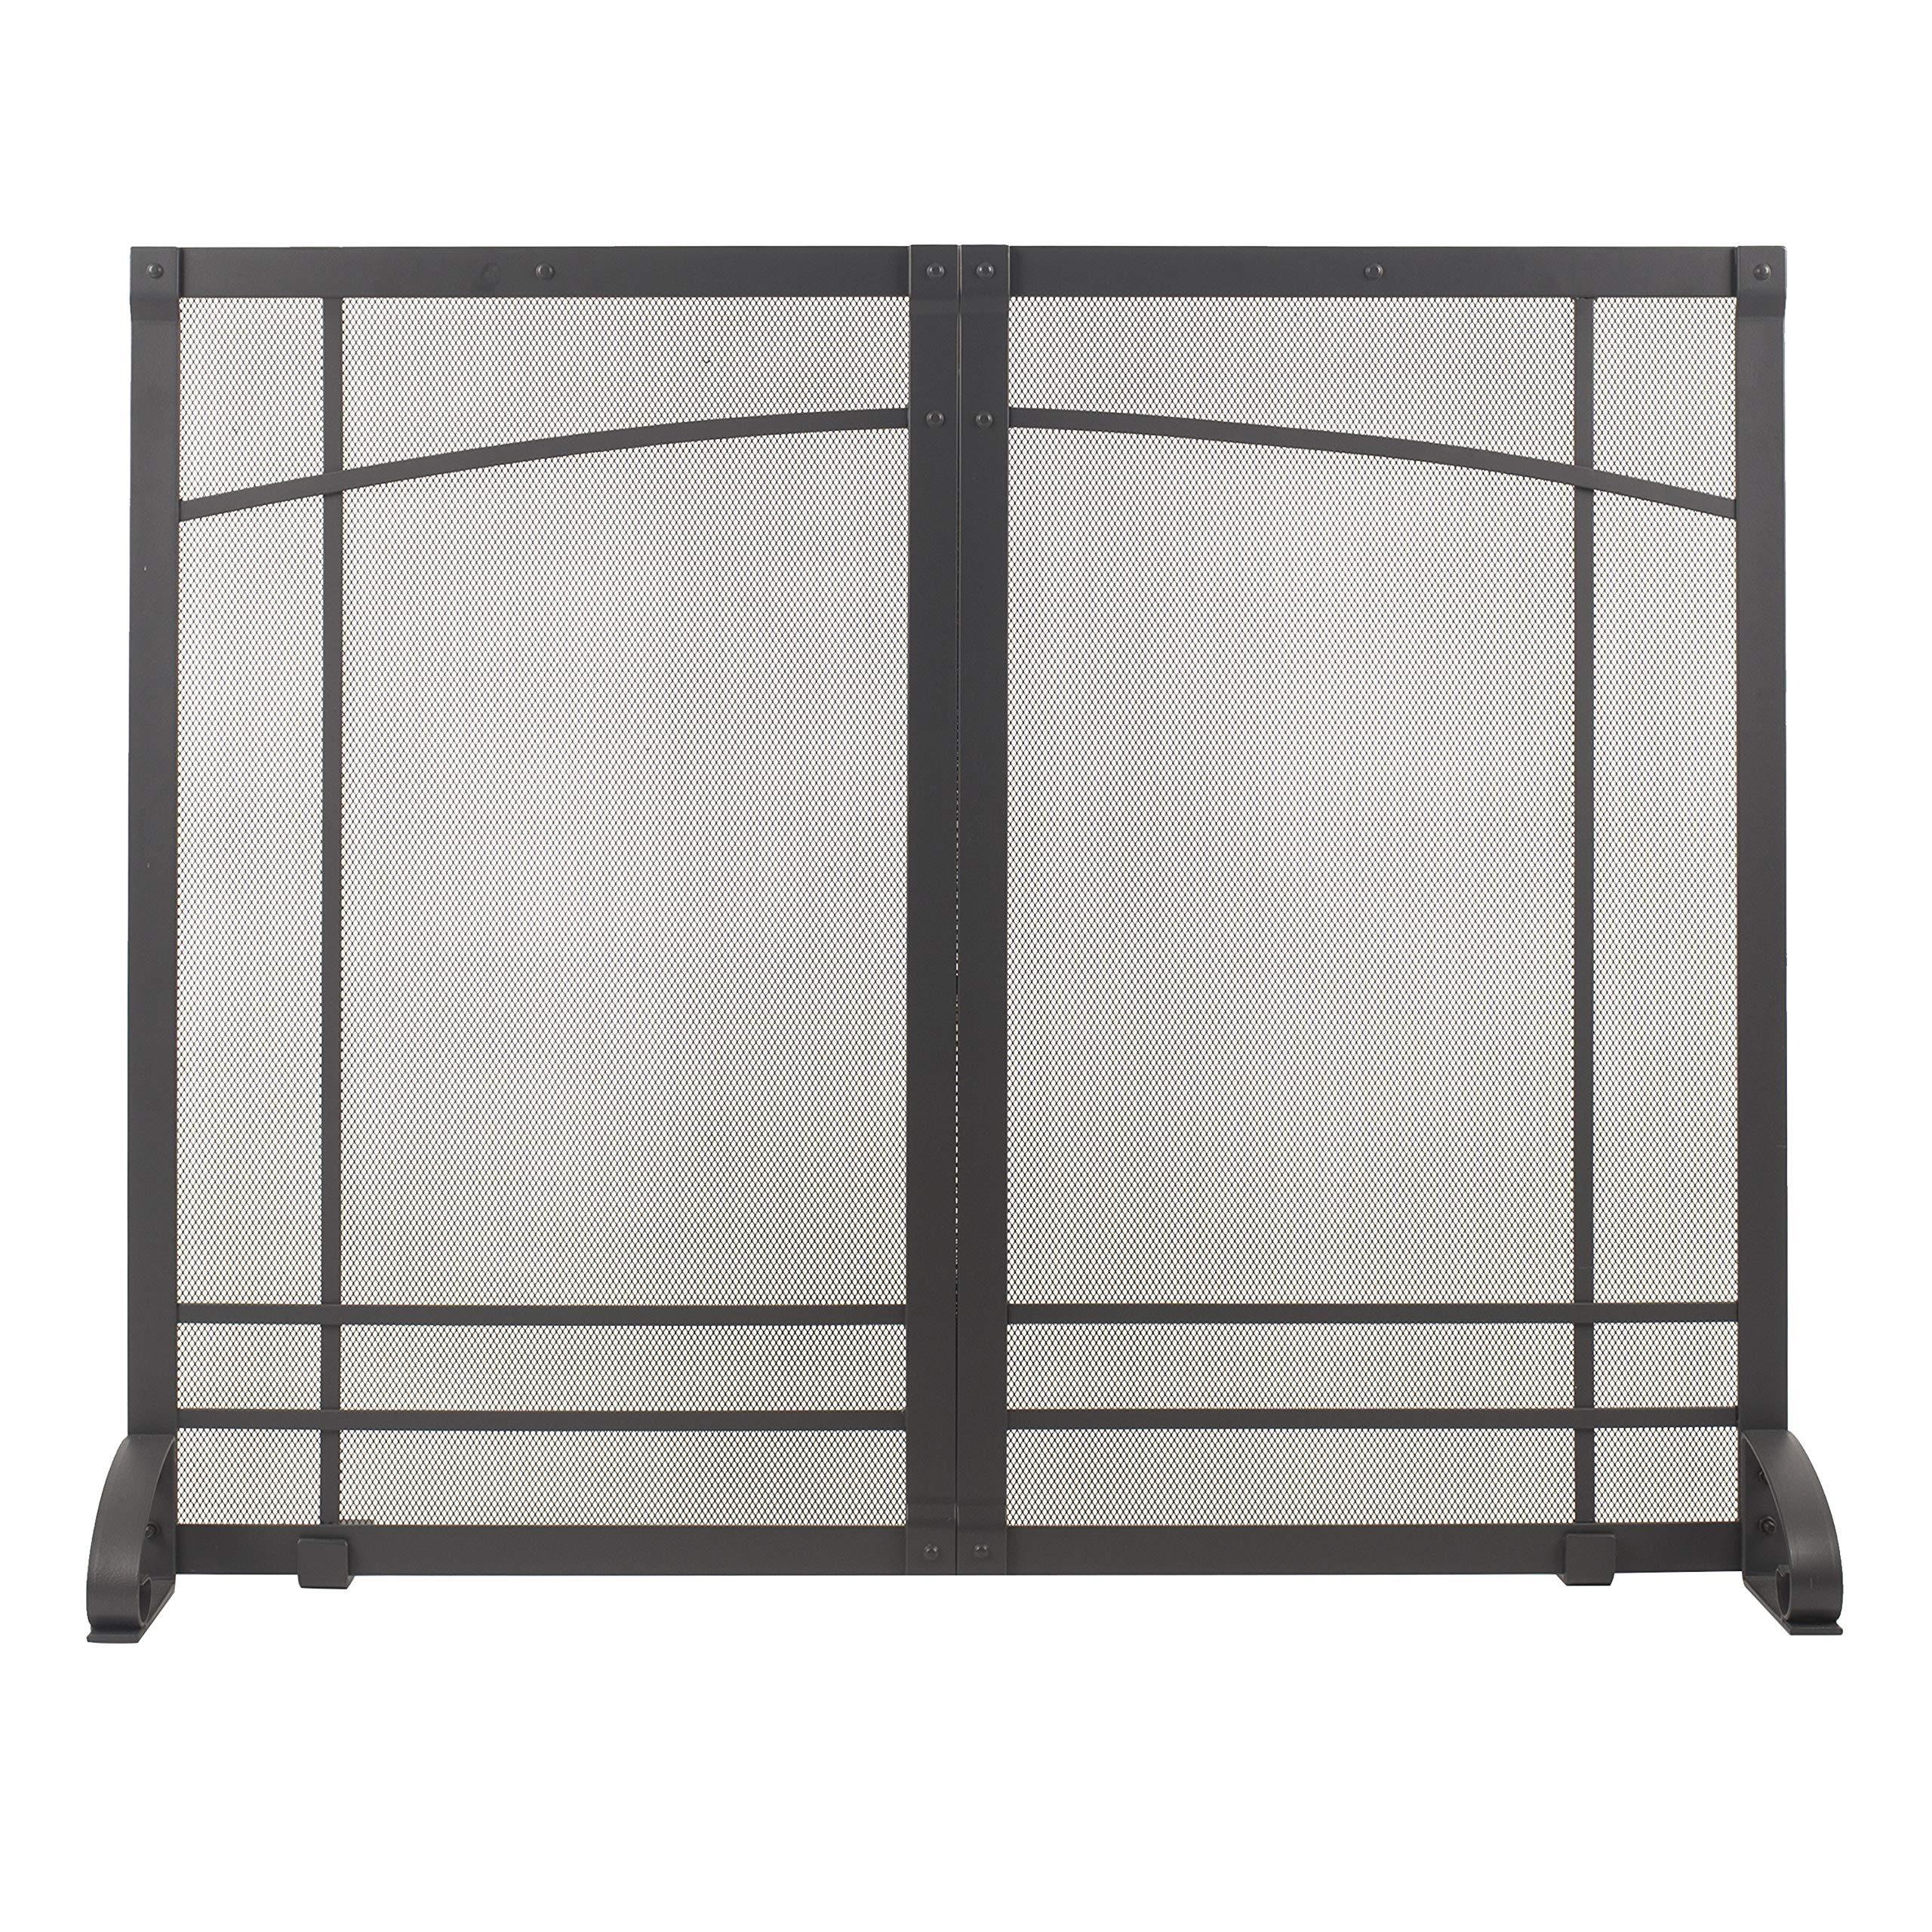 Pleasant Hearth Amherst Fireplace Screen, Iron Black by Pleasant Hearth